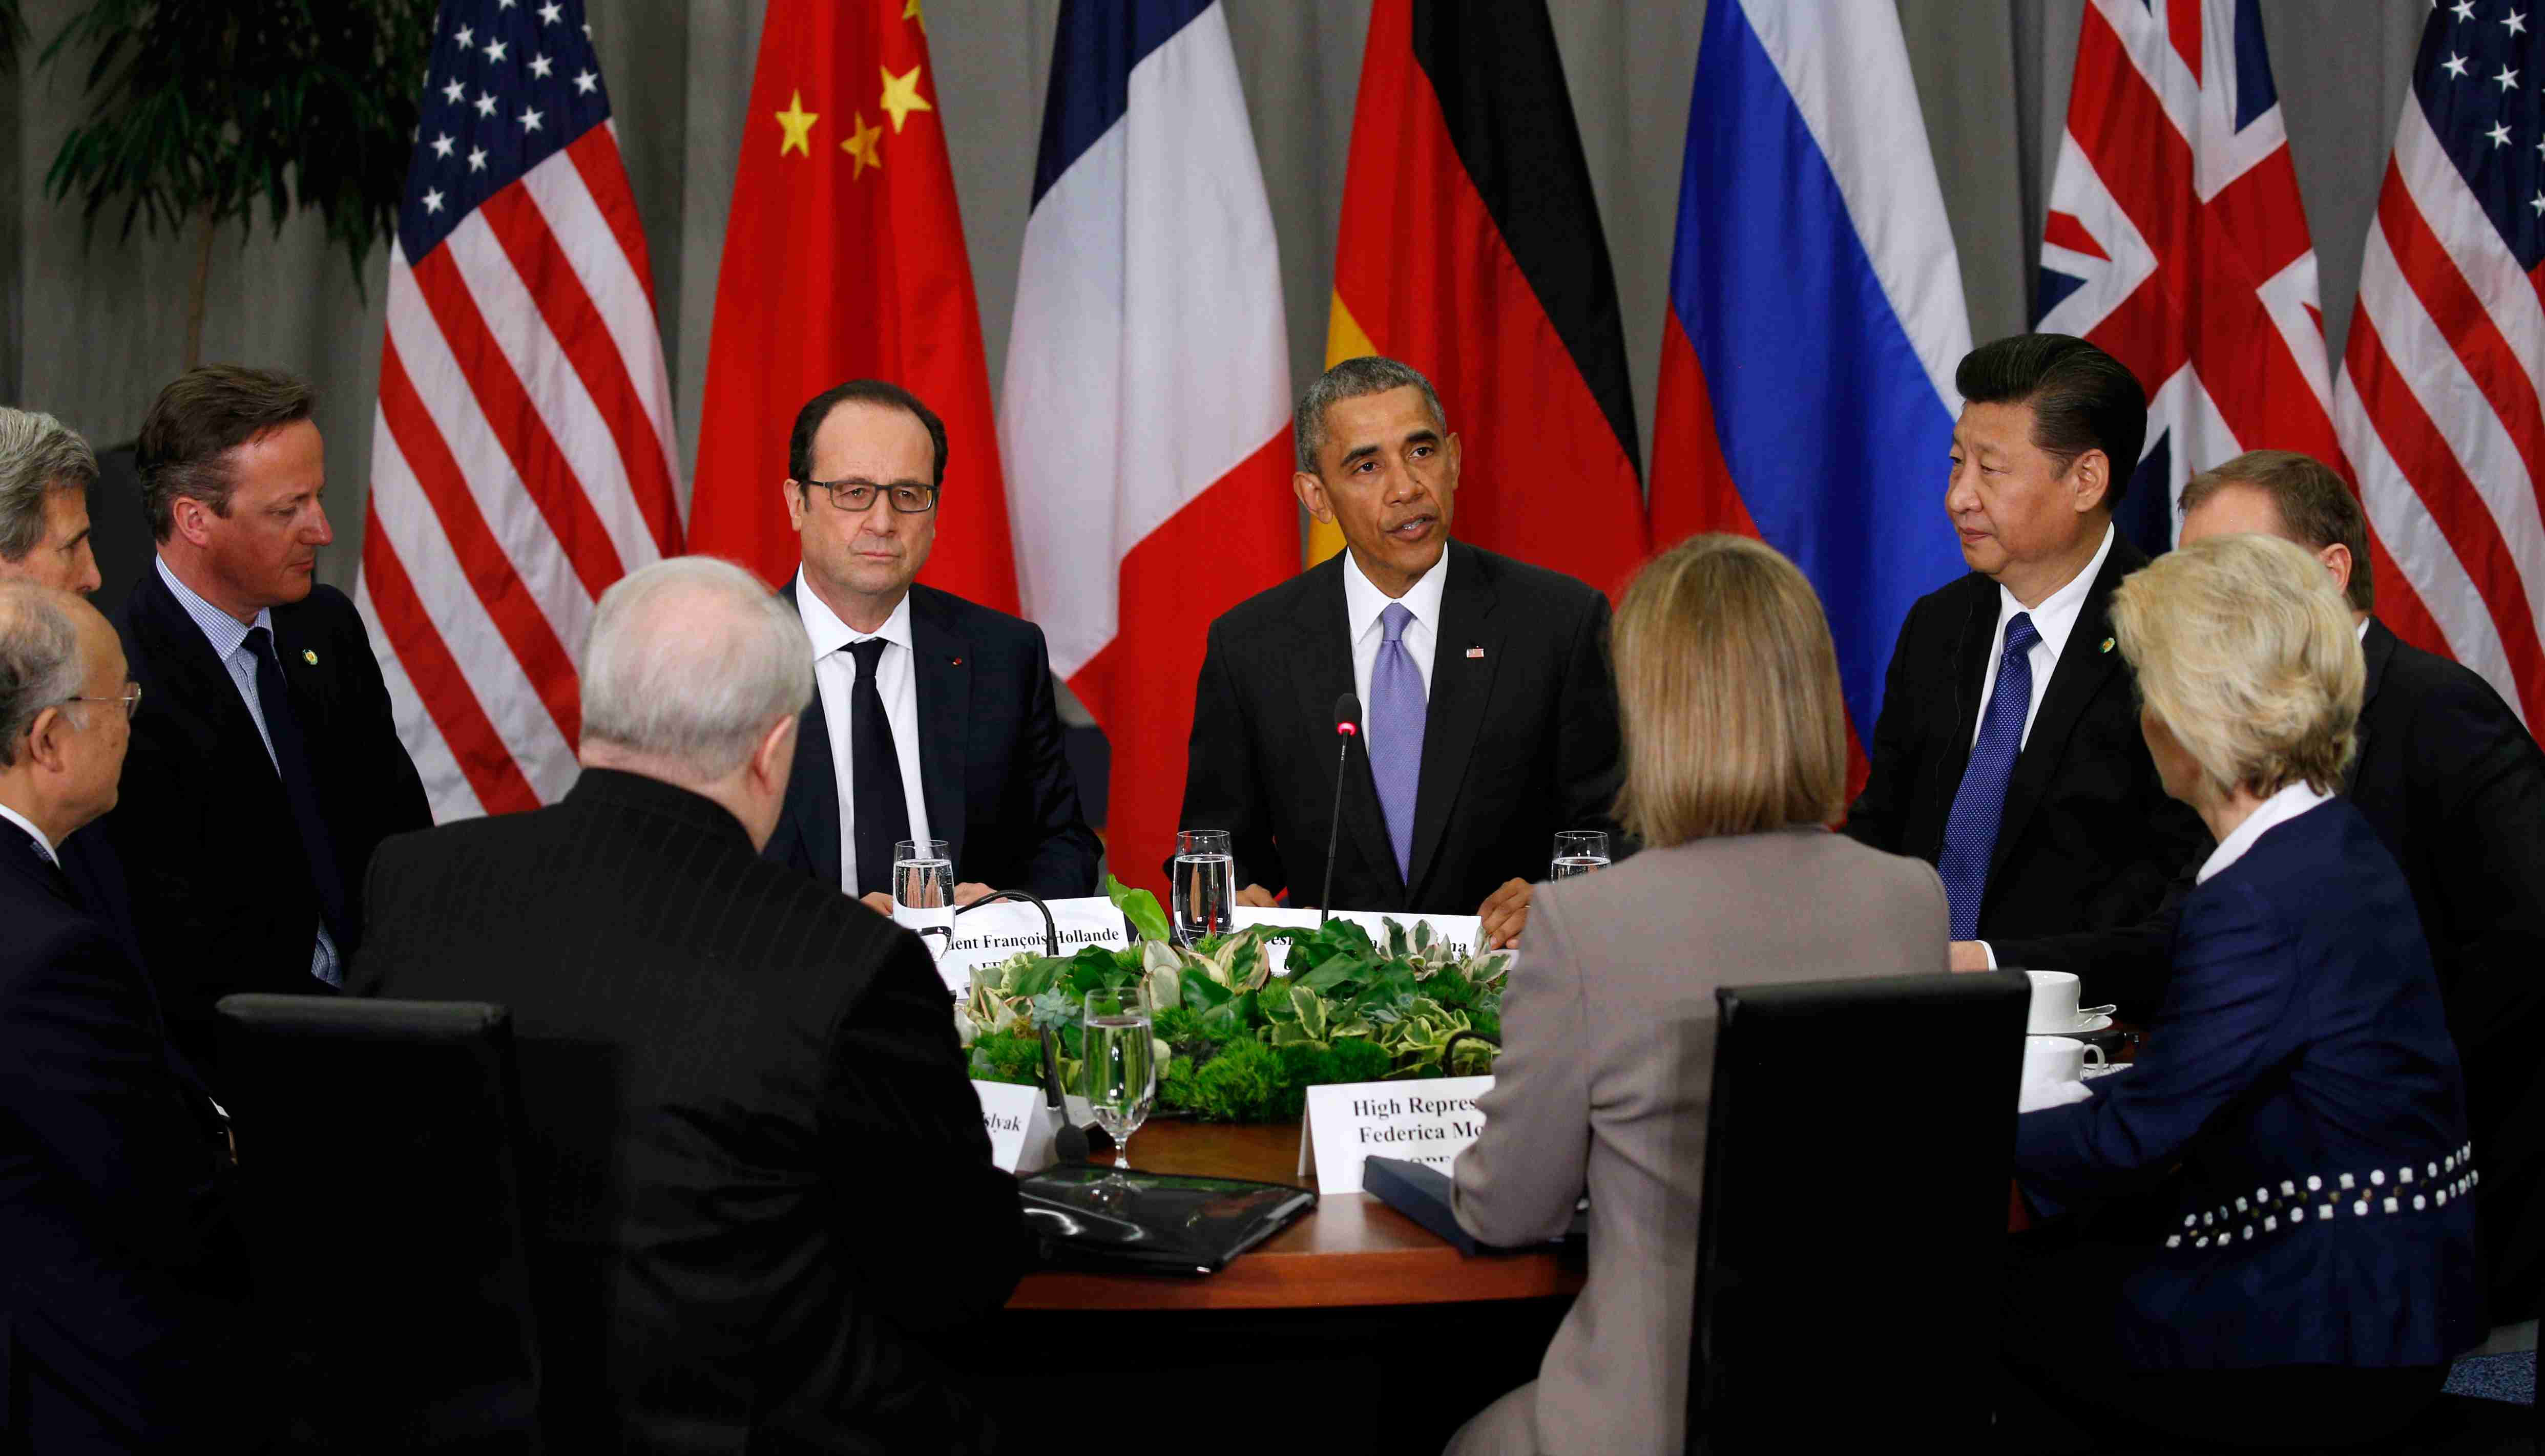 REUTERS/Kevin Lamarque - President Barack Obama hosts members of the P5+1 groupat the Nuclear Security Summit.